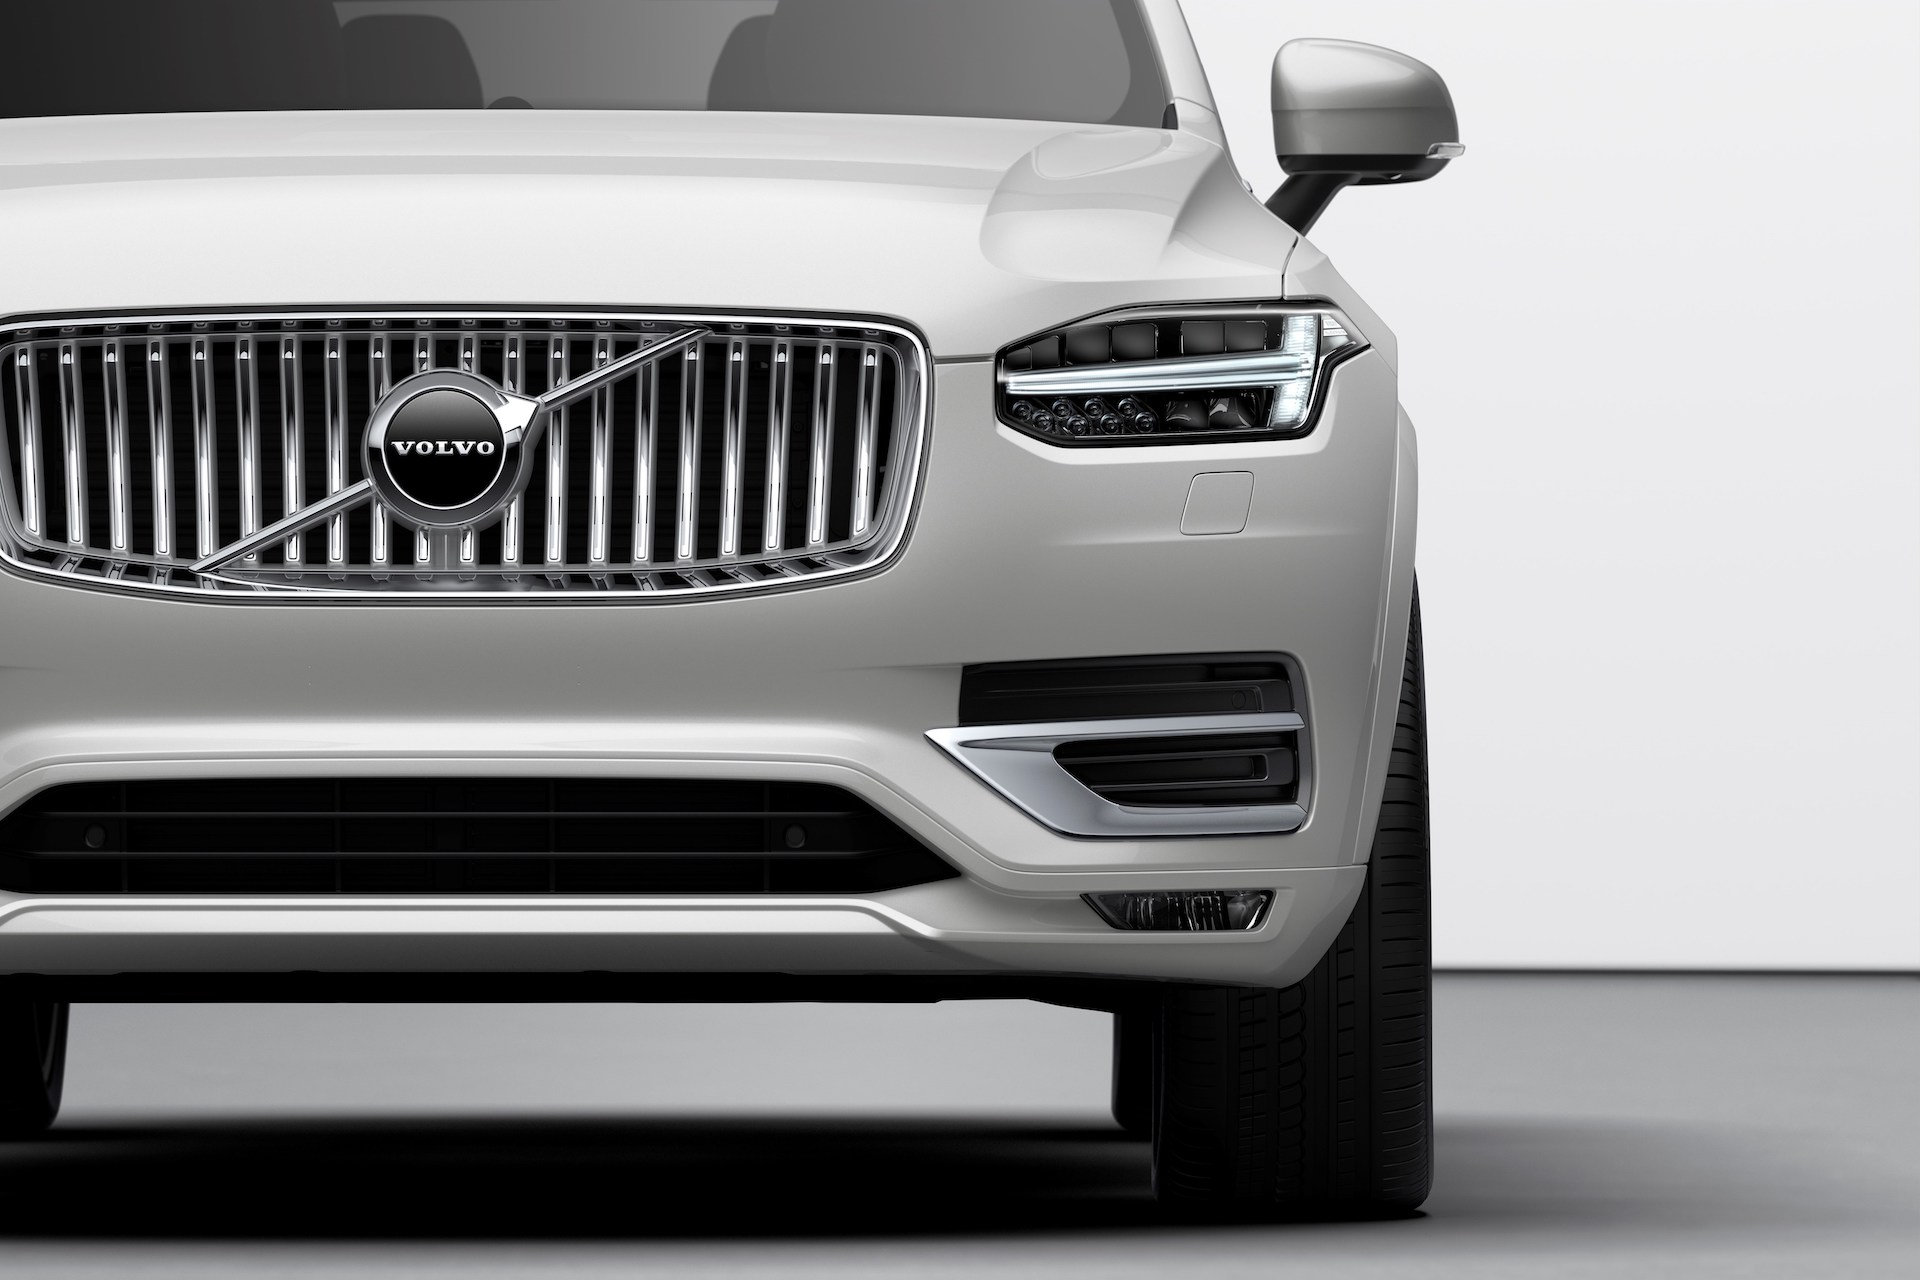 Volvo and Geely plan deep collaboration but rule out full merger